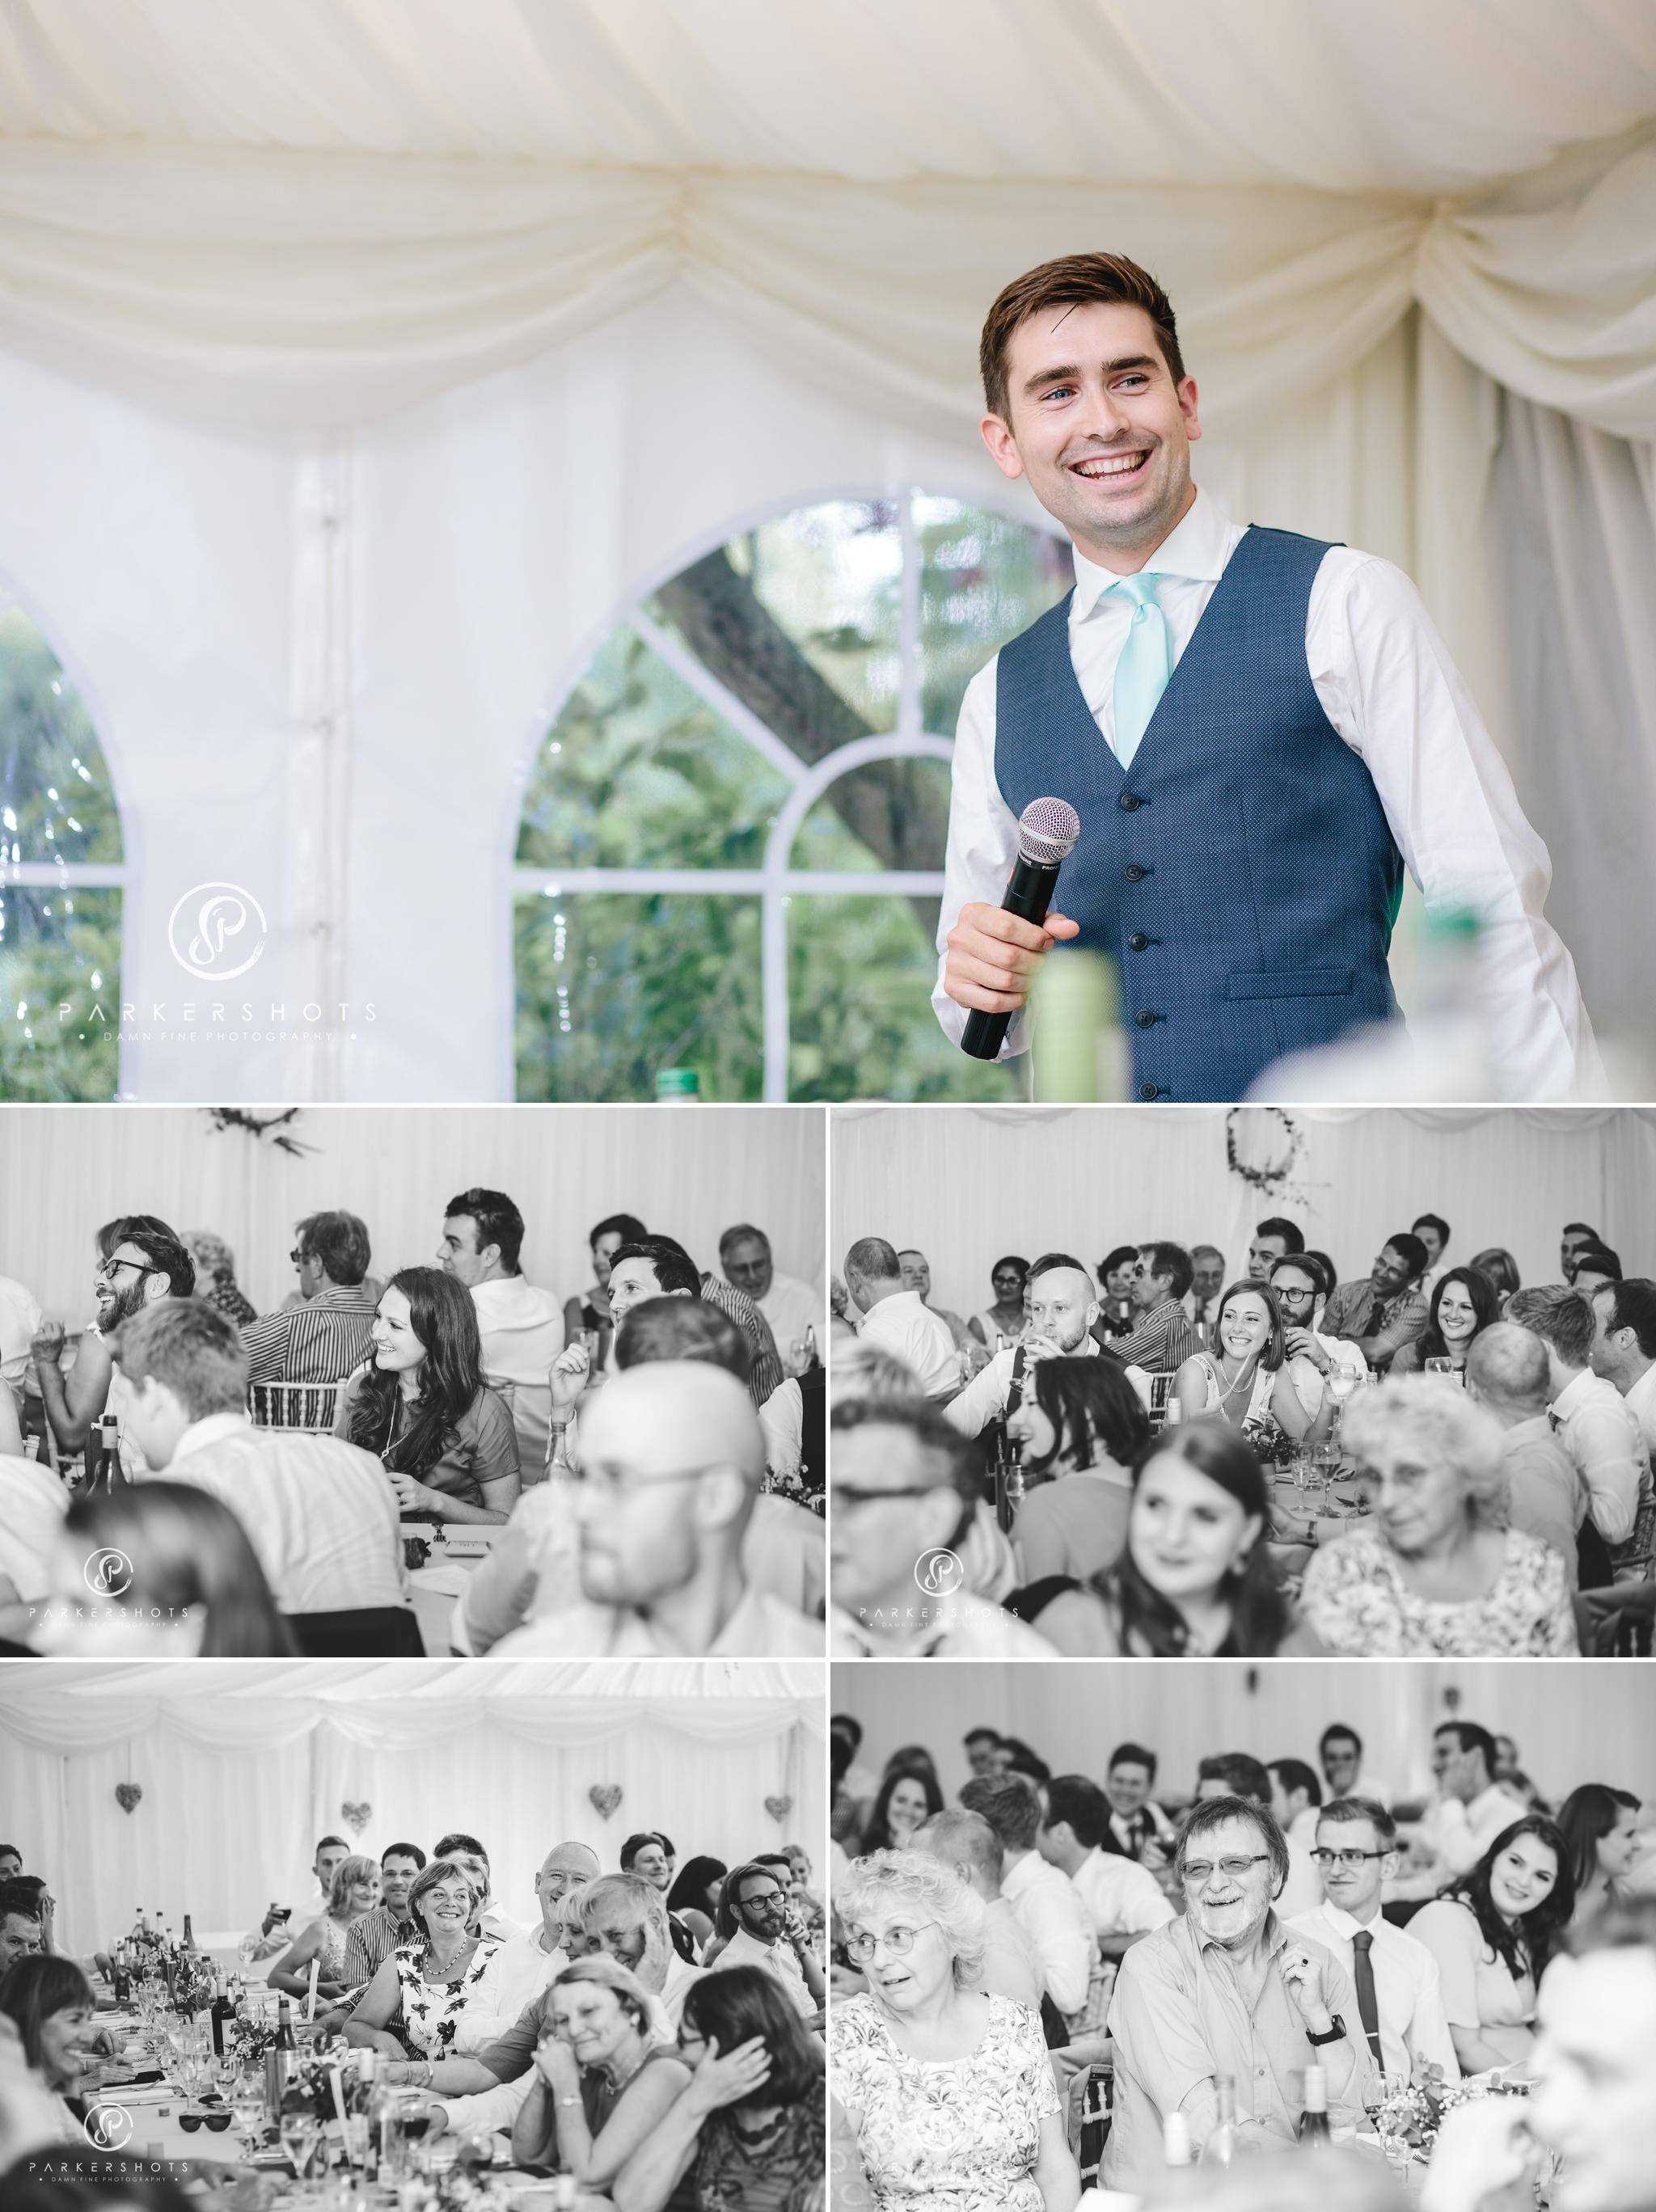 the wedding speeches at relaxed garden wedding in kent